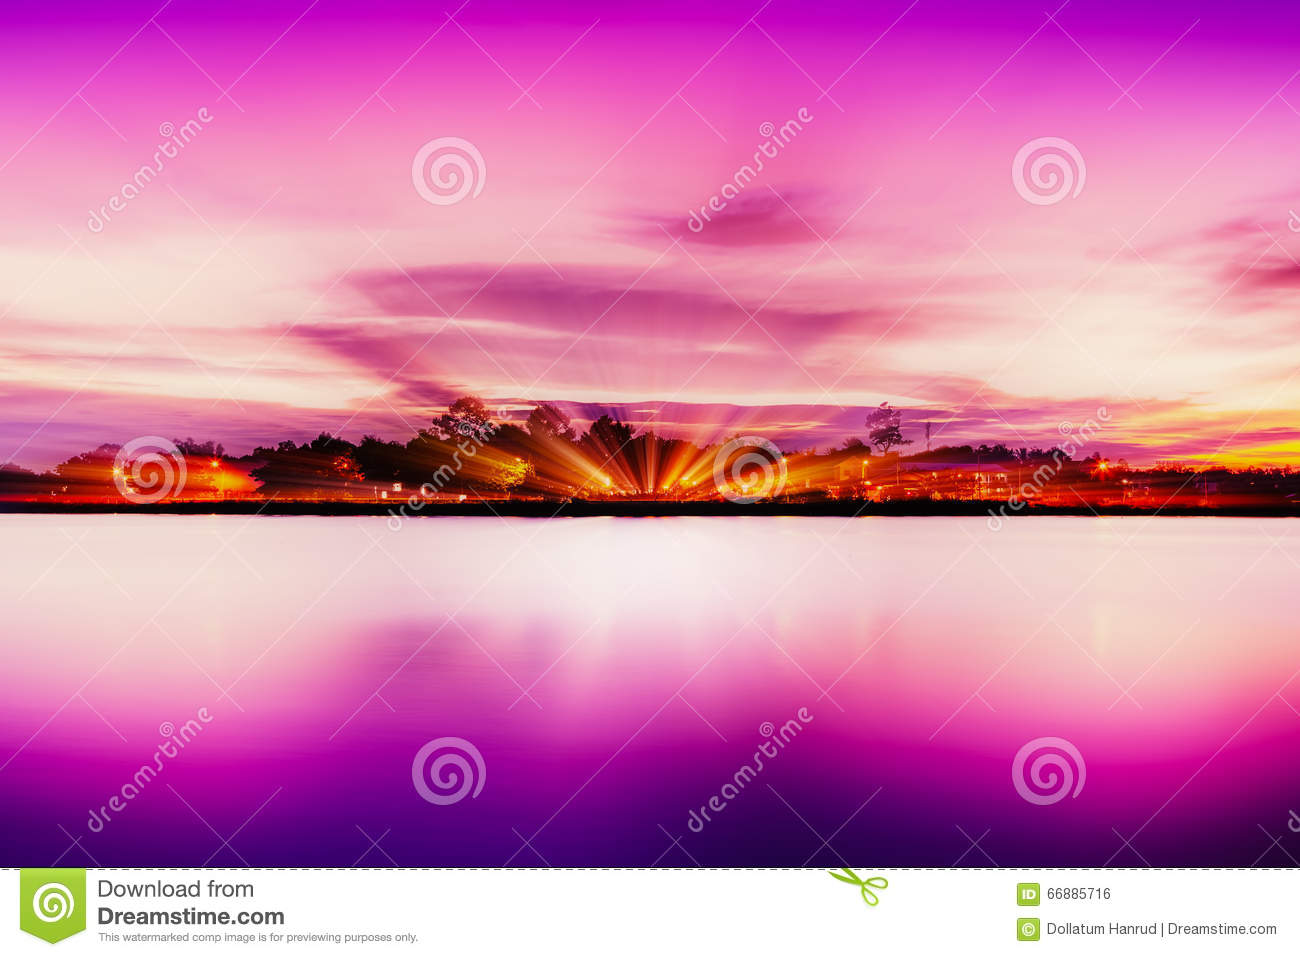 Shore of lake hour in pink.